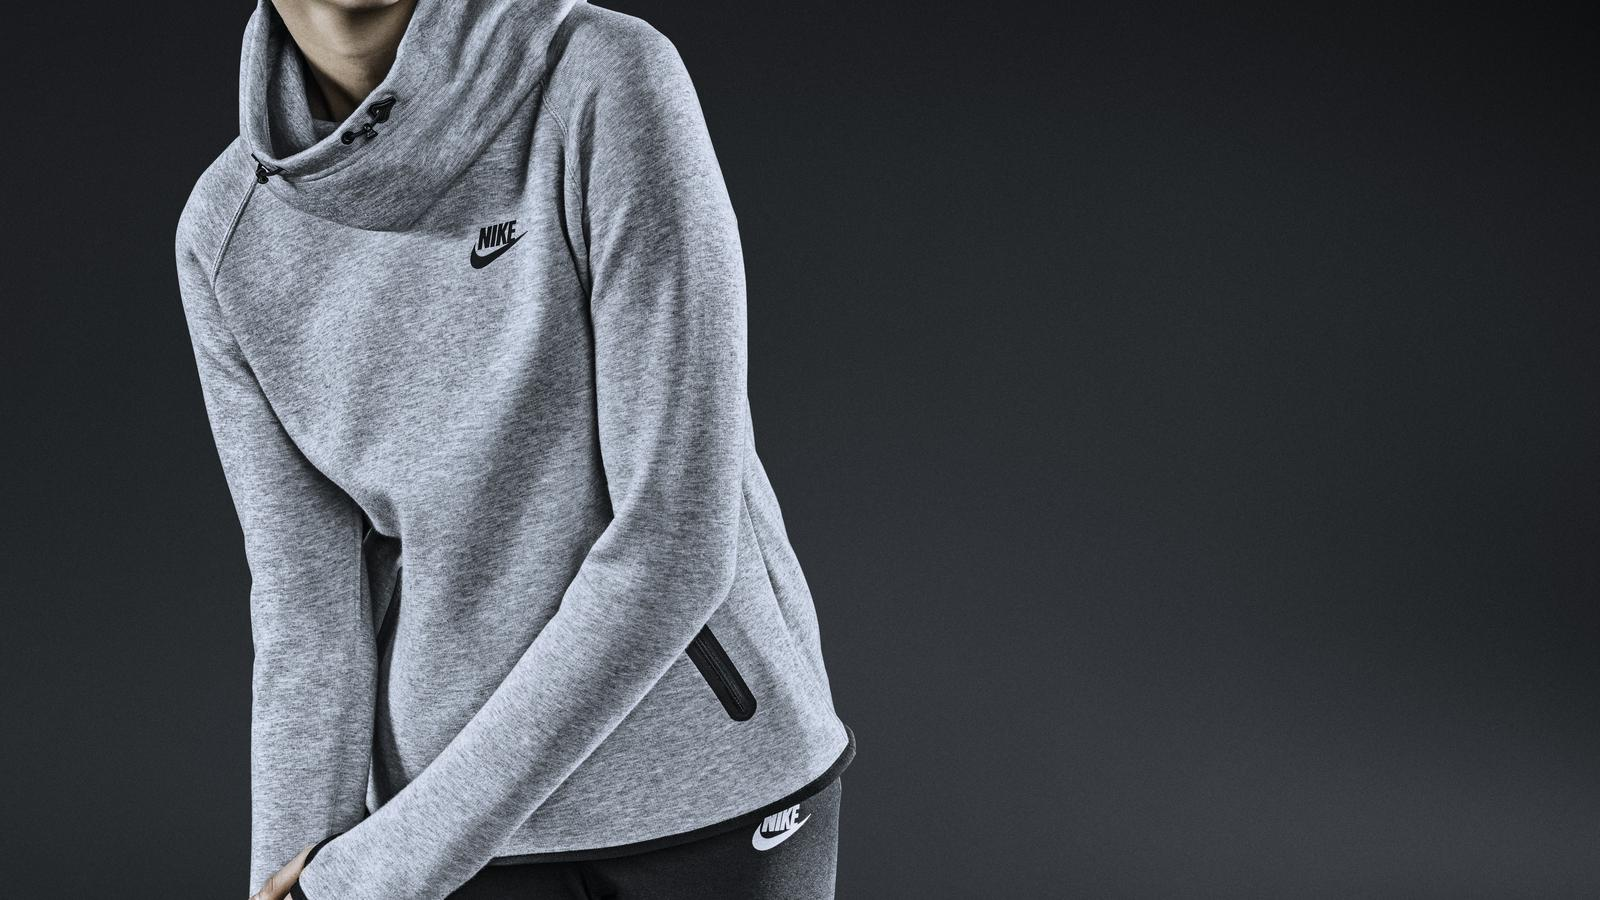 b51e3a9d87e1 Nike Tech Pack  Tech Fleece - Nike News